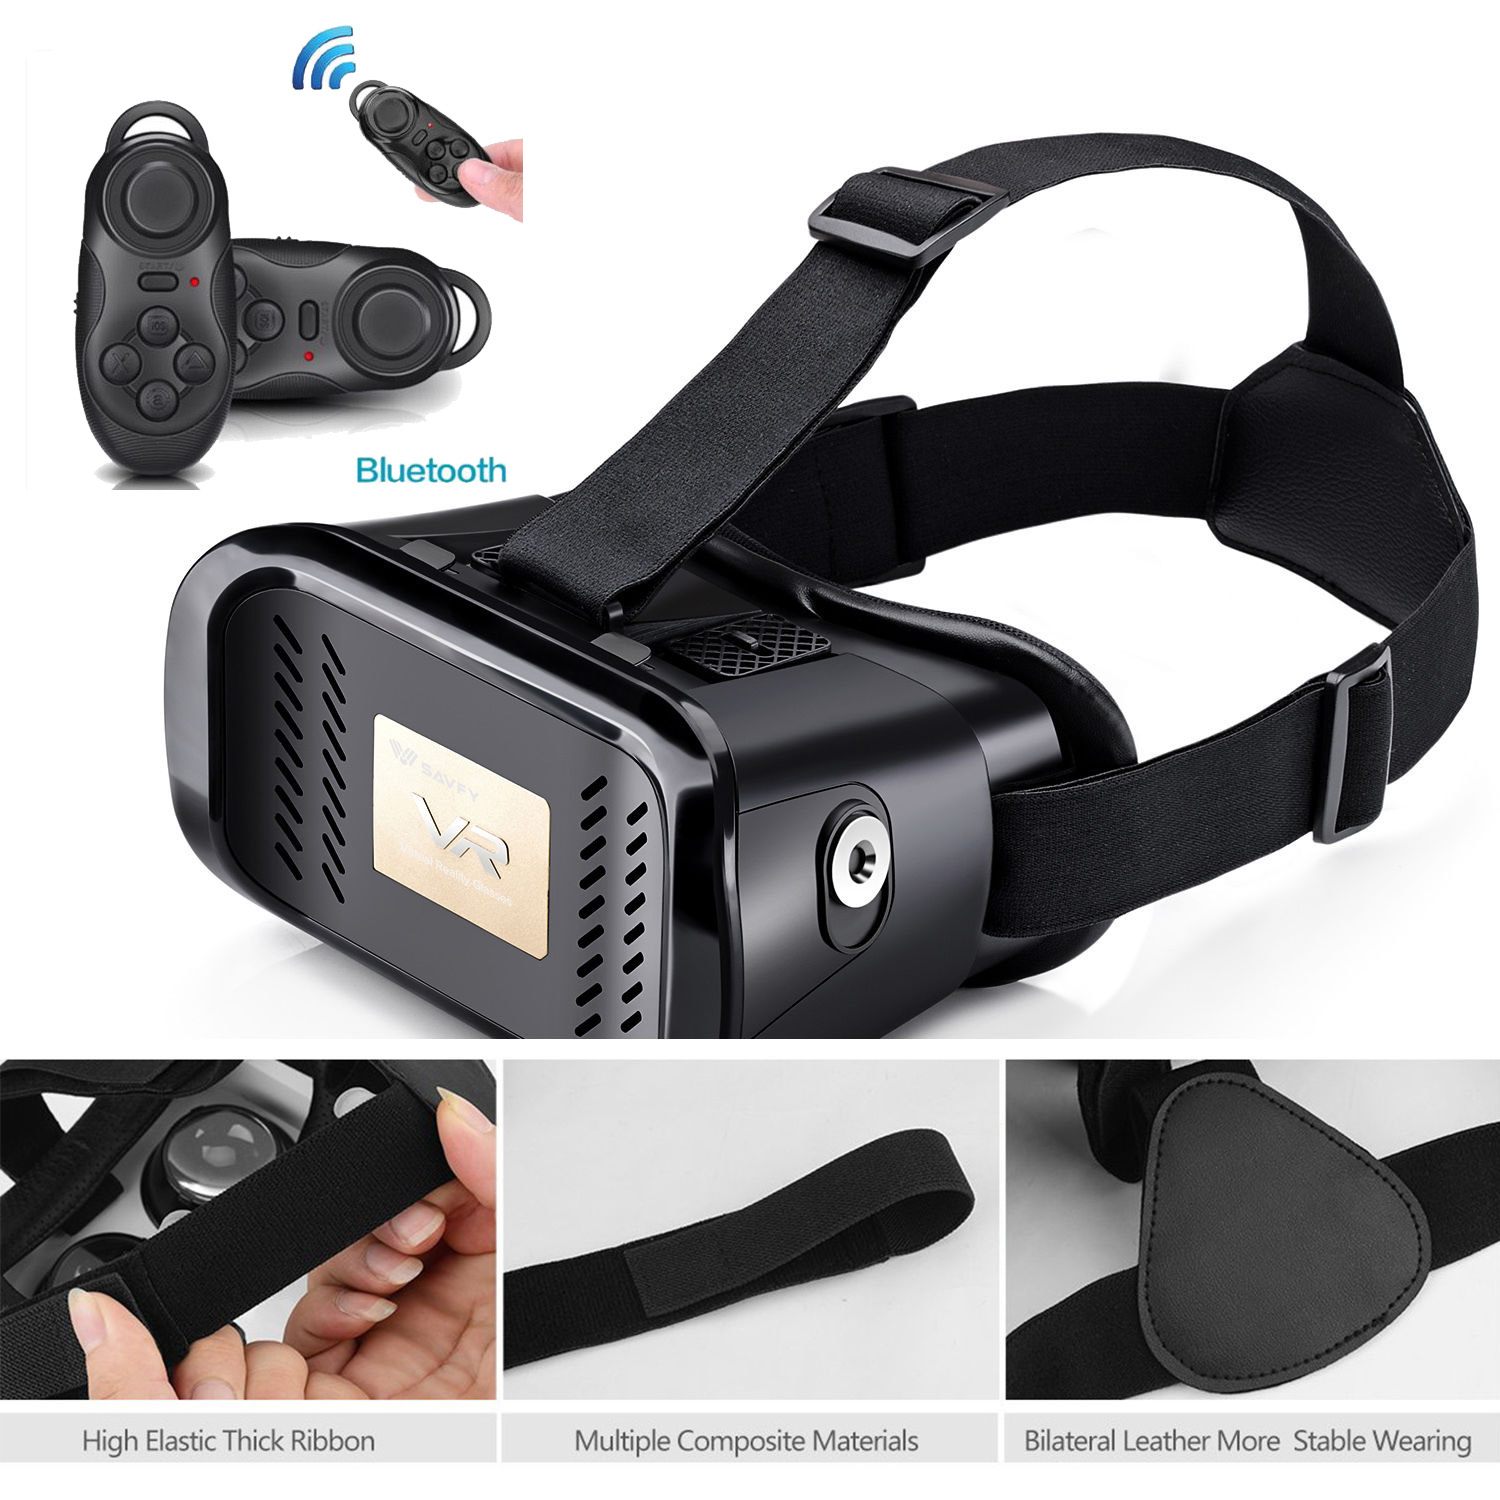 virtual reality vr 3d glasses headmount google cardboard bluetooth controller ebay. Black Bedroom Furniture Sets. Home Design Ideas